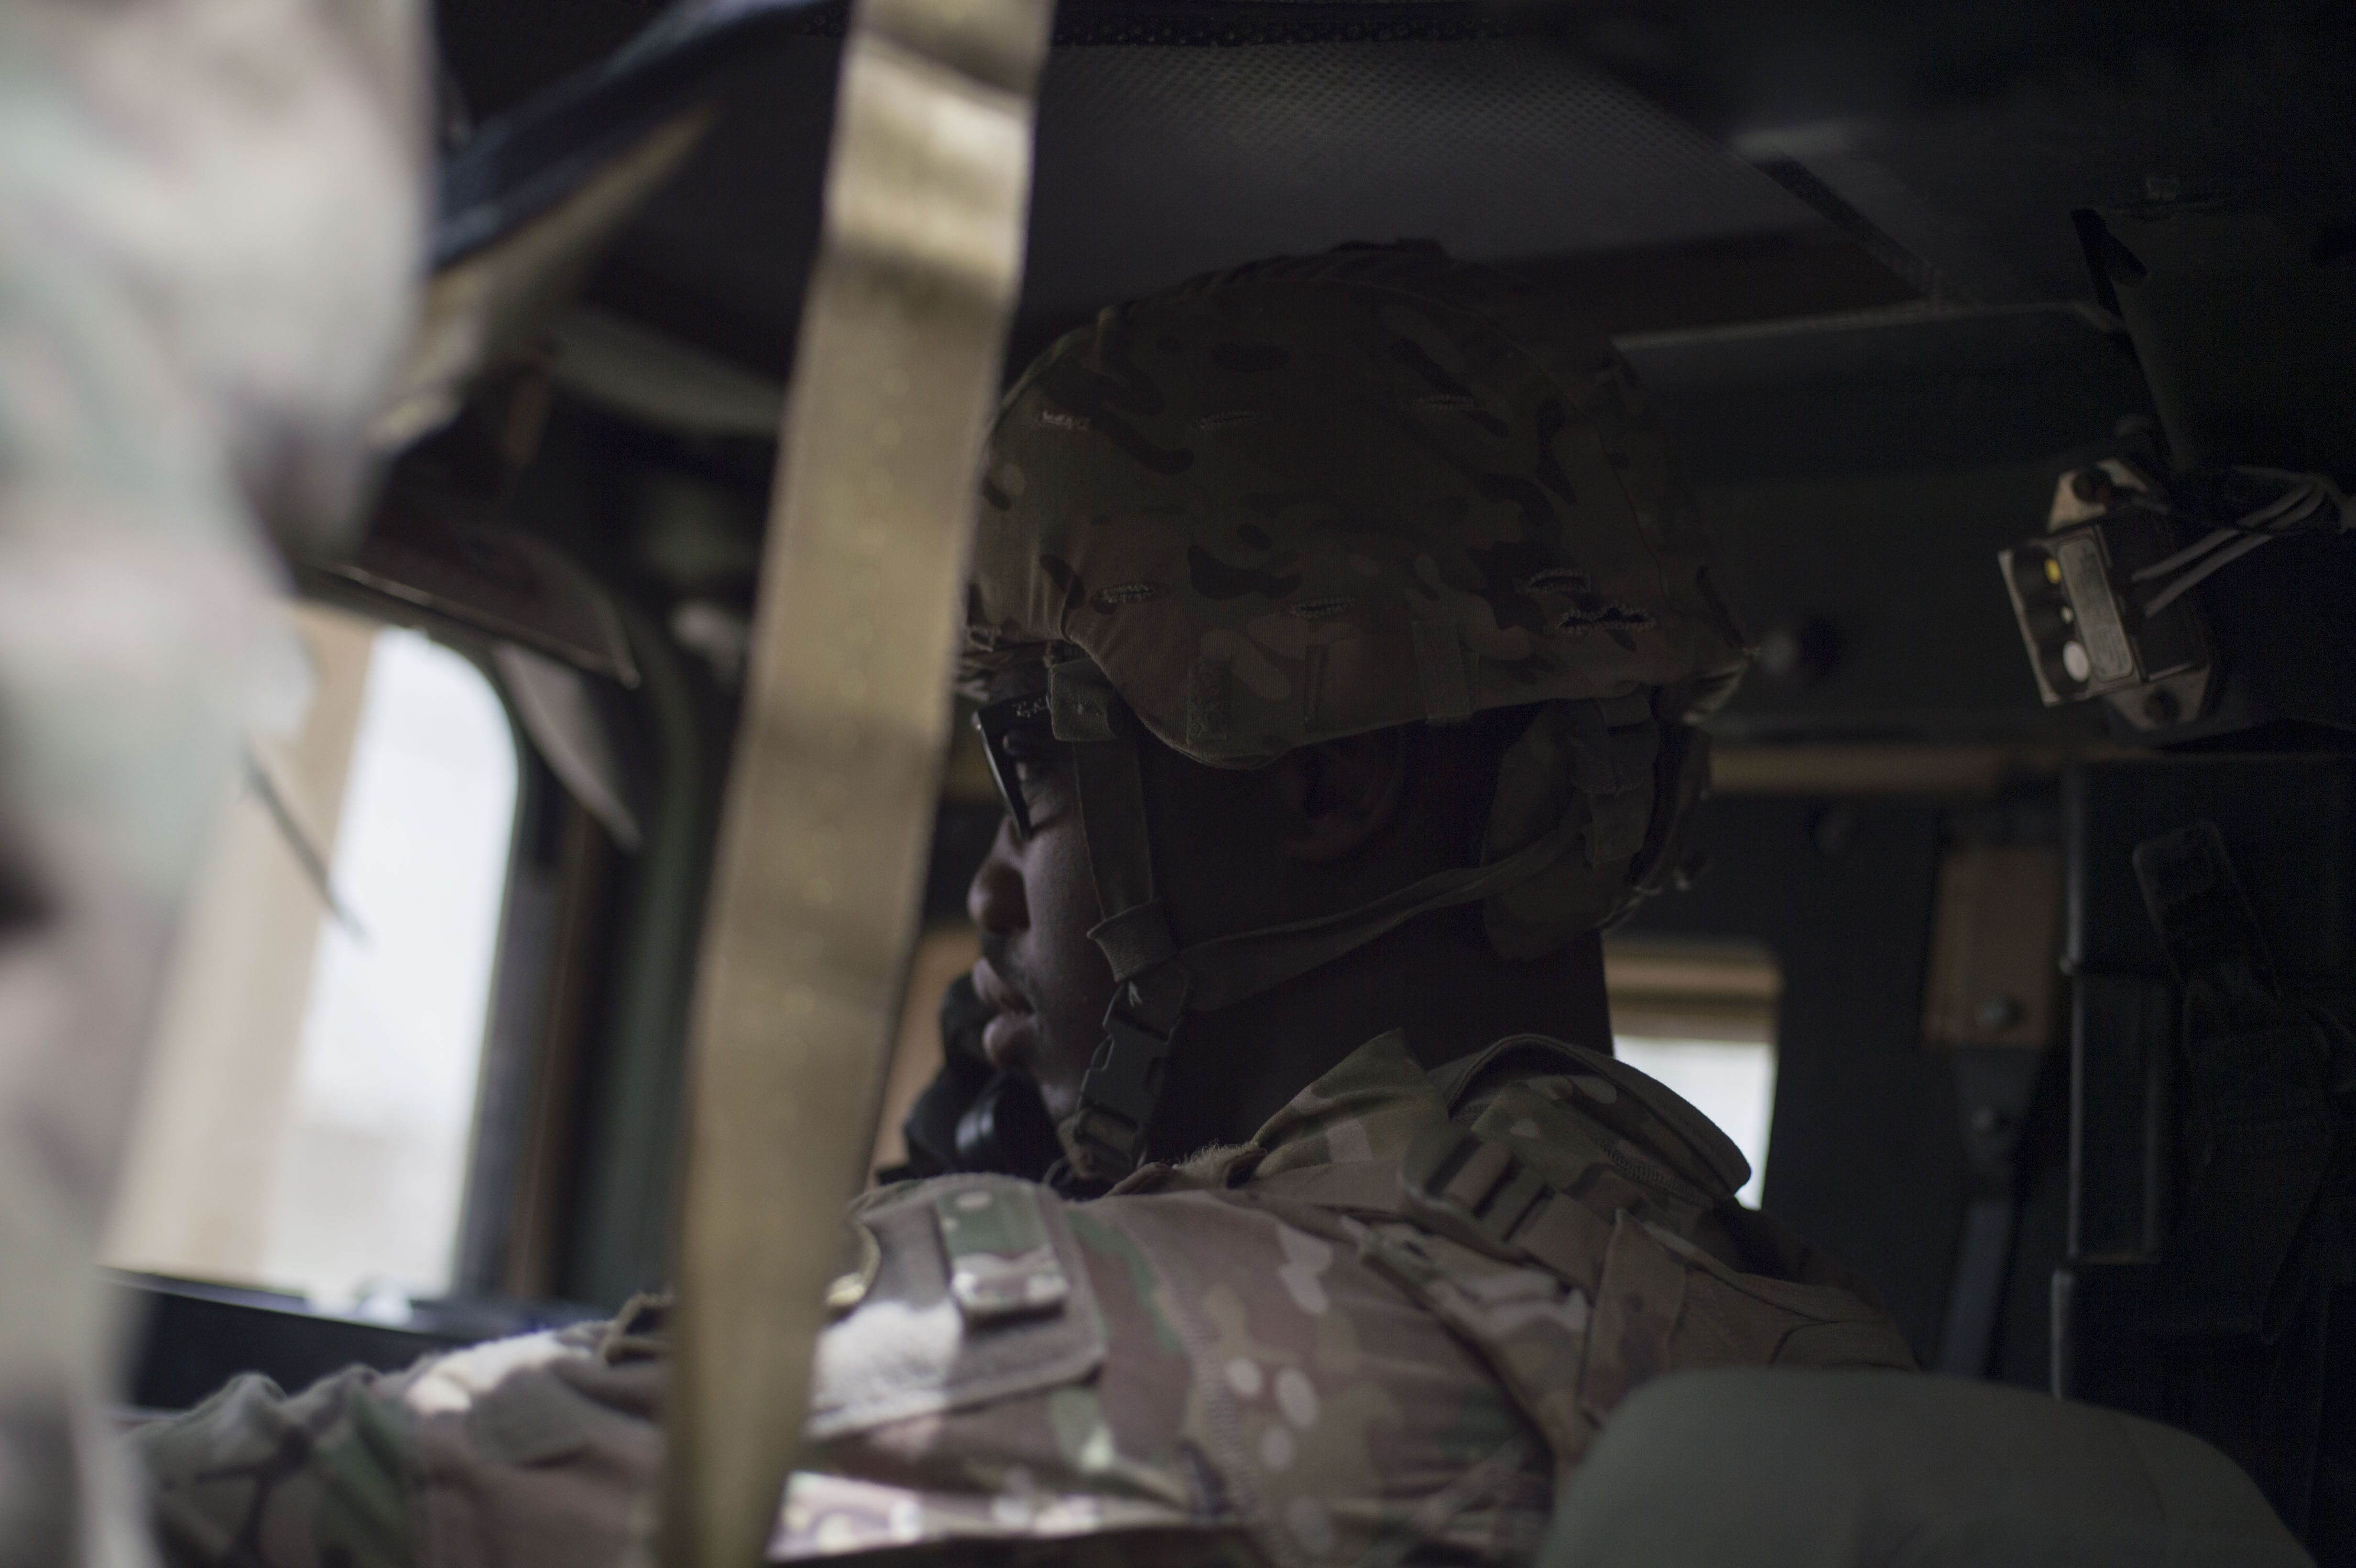 U.S. Army Spc. Vital Dieujuste, Combined Joint Task Force-Horn of Africa Quick Reaction Force team member, communicates with the lead vehicle during a mission June 20, 2016, at Camp Lemonnier, Djibouti. Dieujuste is a native of Palm Beach, Fla. (U.S. Air Force photo by Staff Sgt. Eric Summers Jr.)